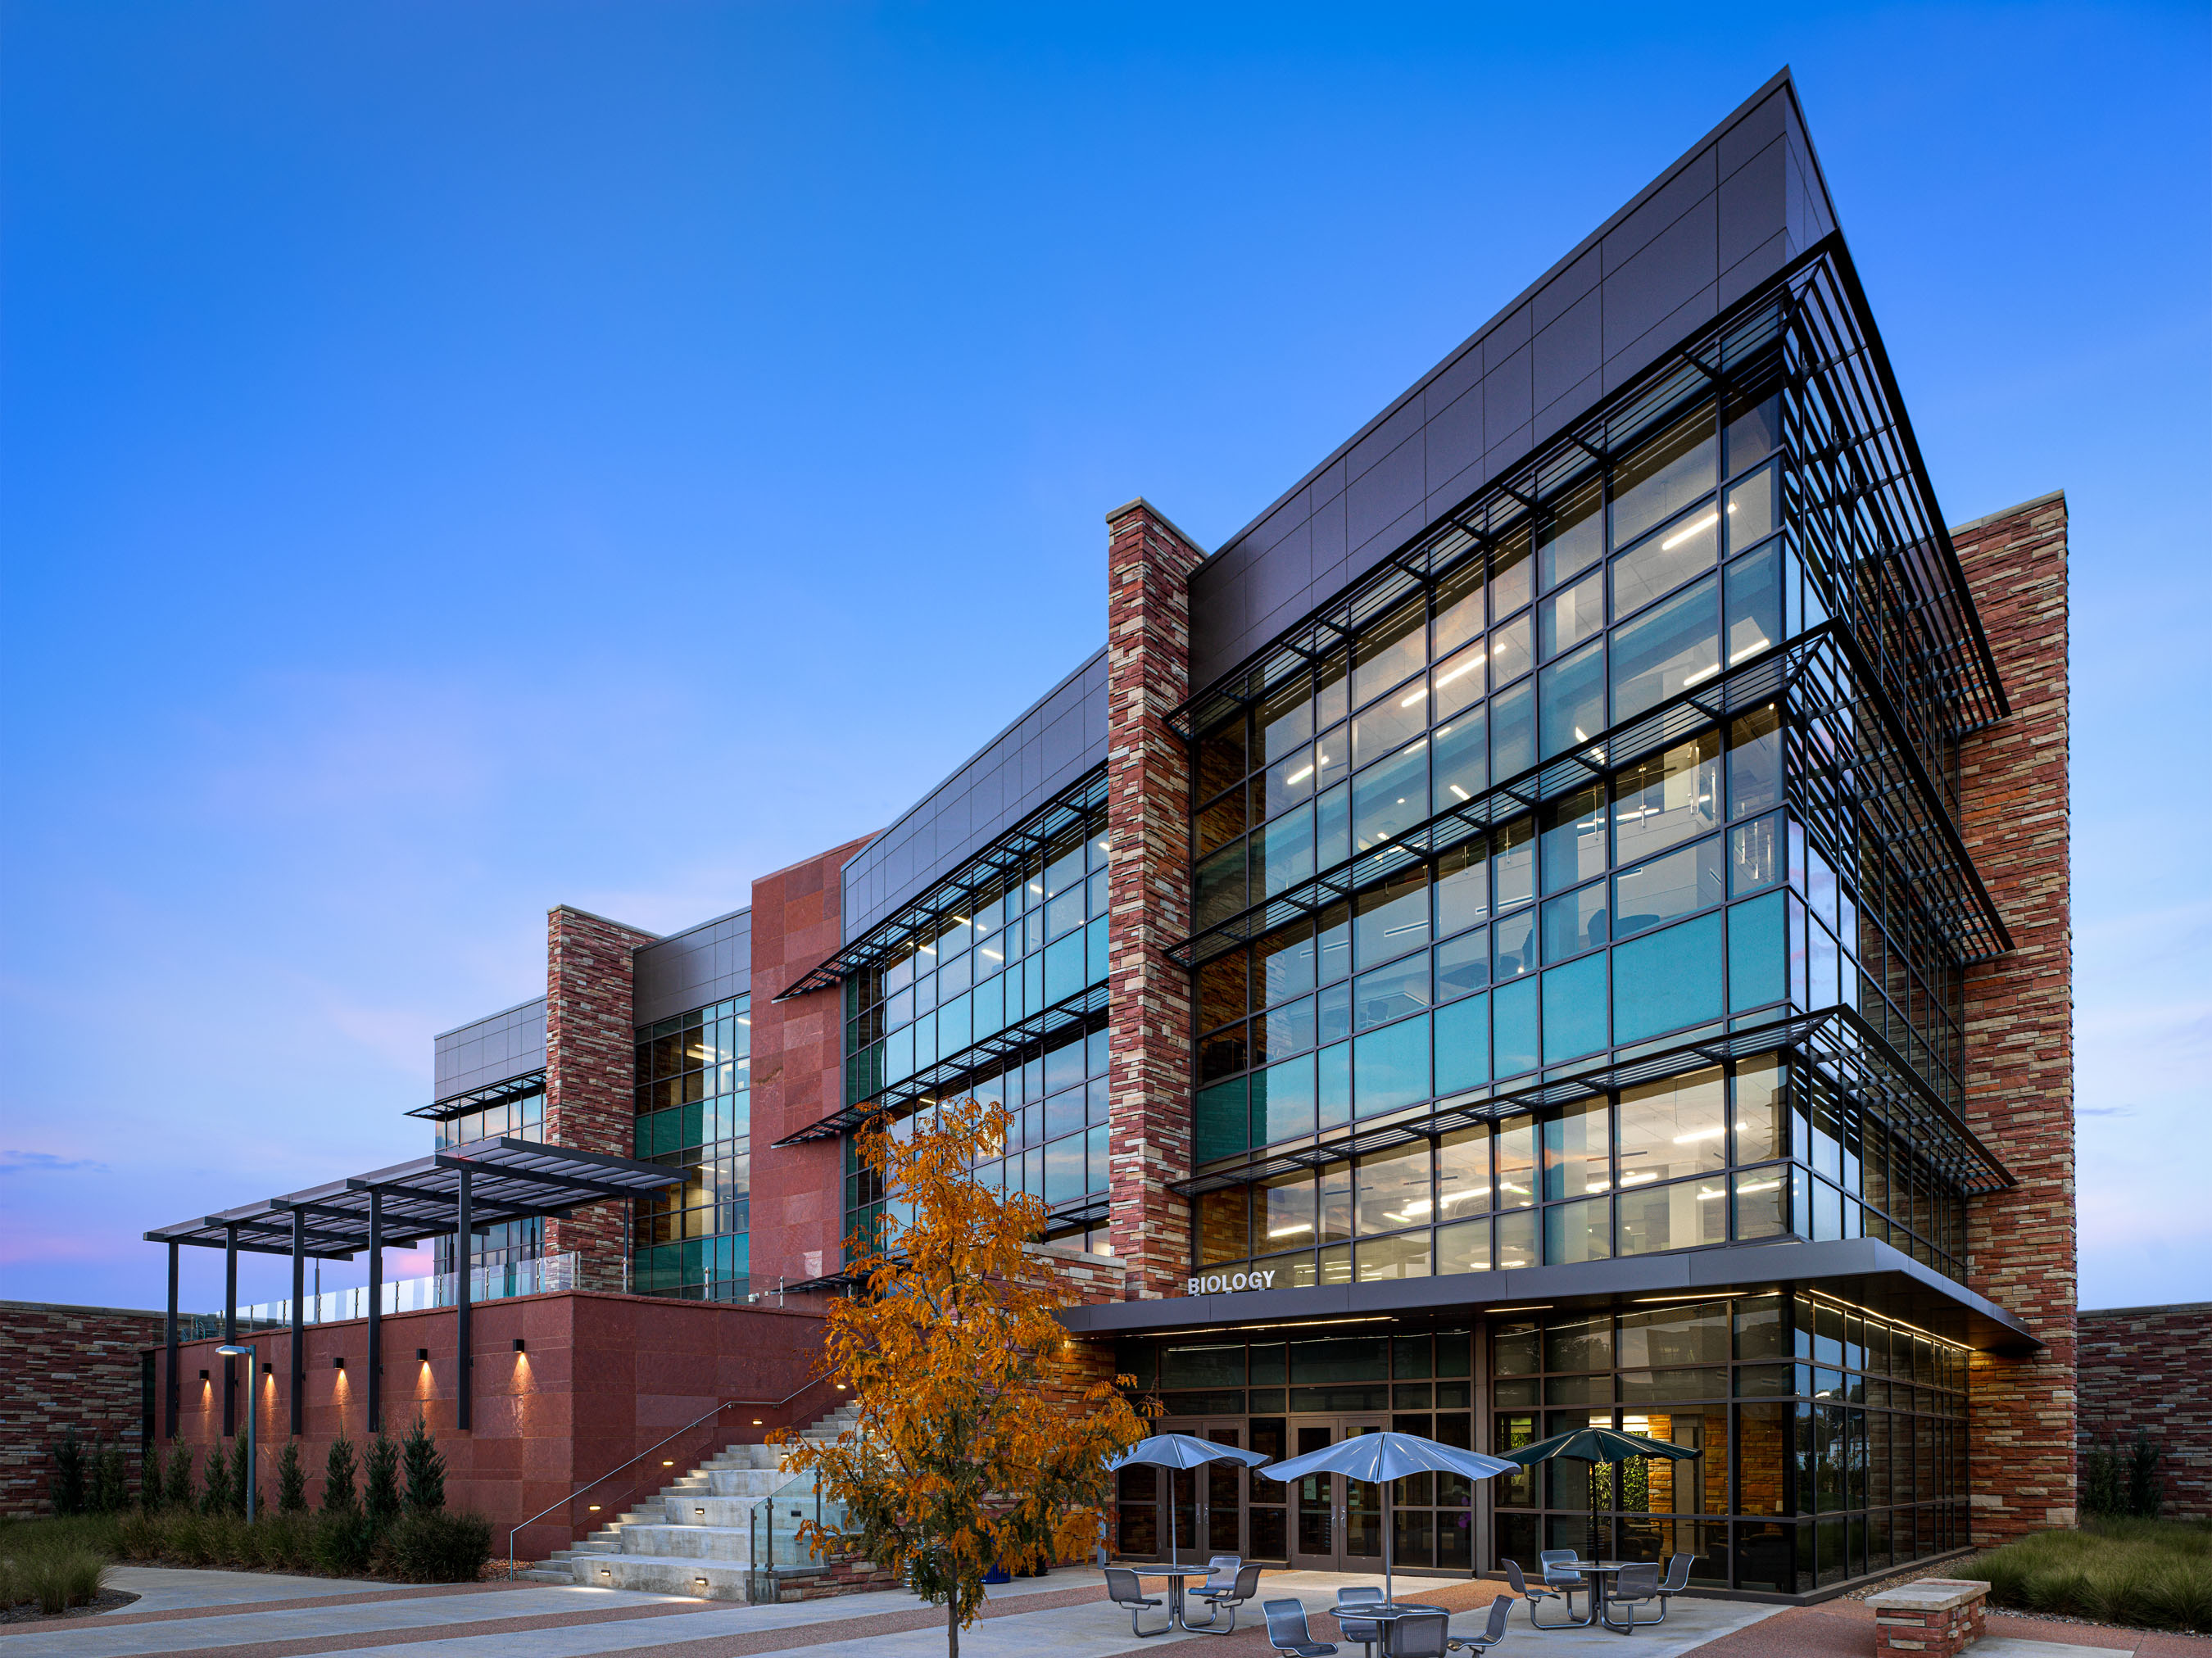 Architecture photography of CSU Biology Building in Fort Collins, Colorado.